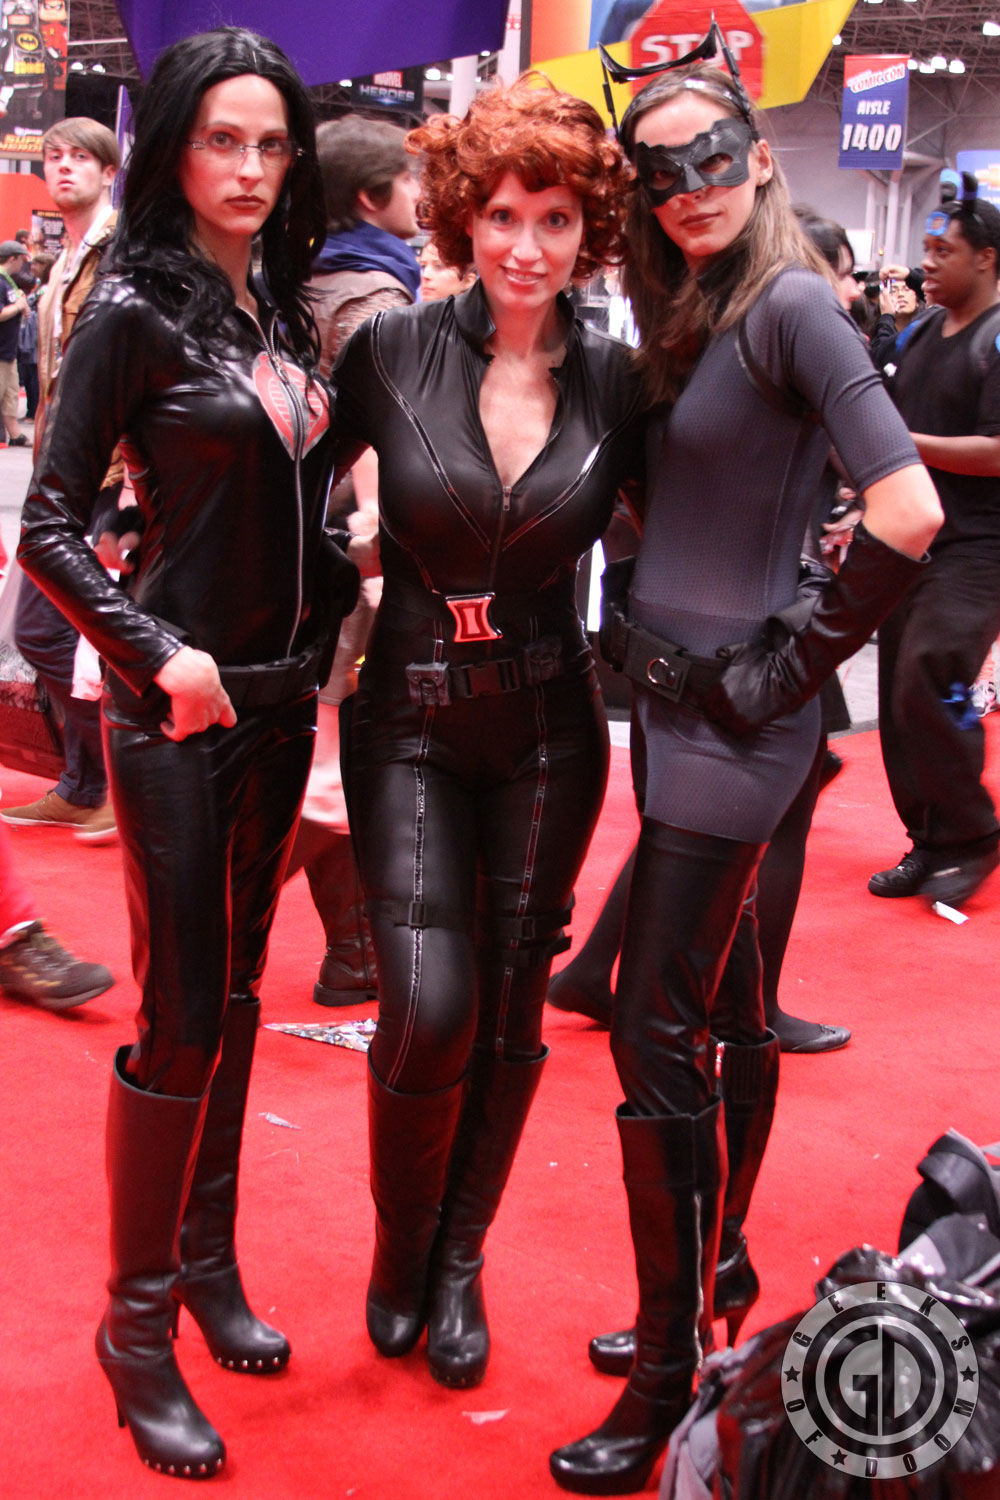 NYCC 2012: Baroness, Catwoman cosplay